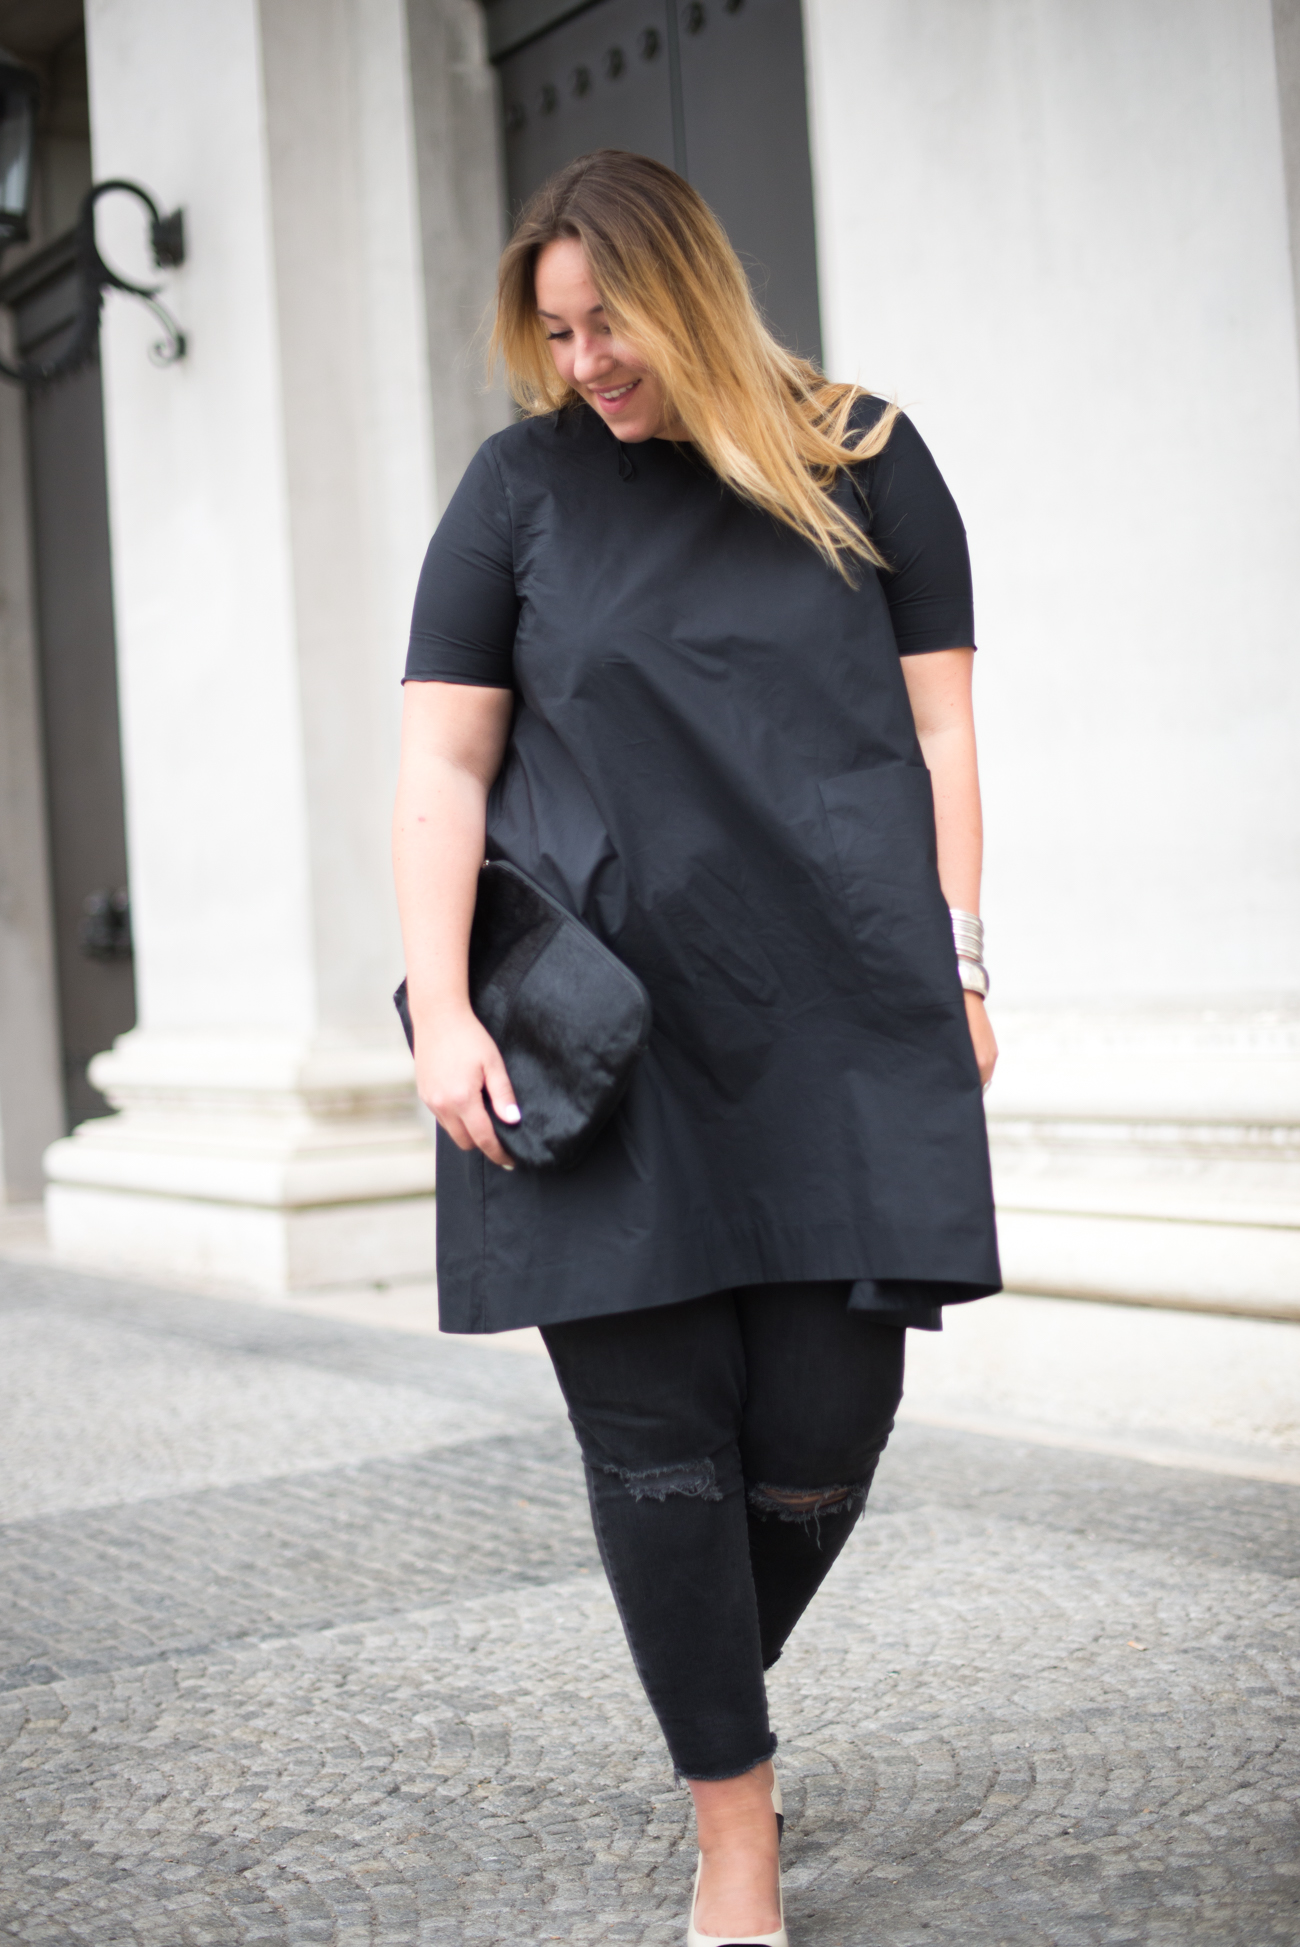 The Skinny and the Curvy One_Dress over Pants_Plussize Blogger_Plussize Fashion_Sling Back Pumps_Chanel Look a like (3 von 5)